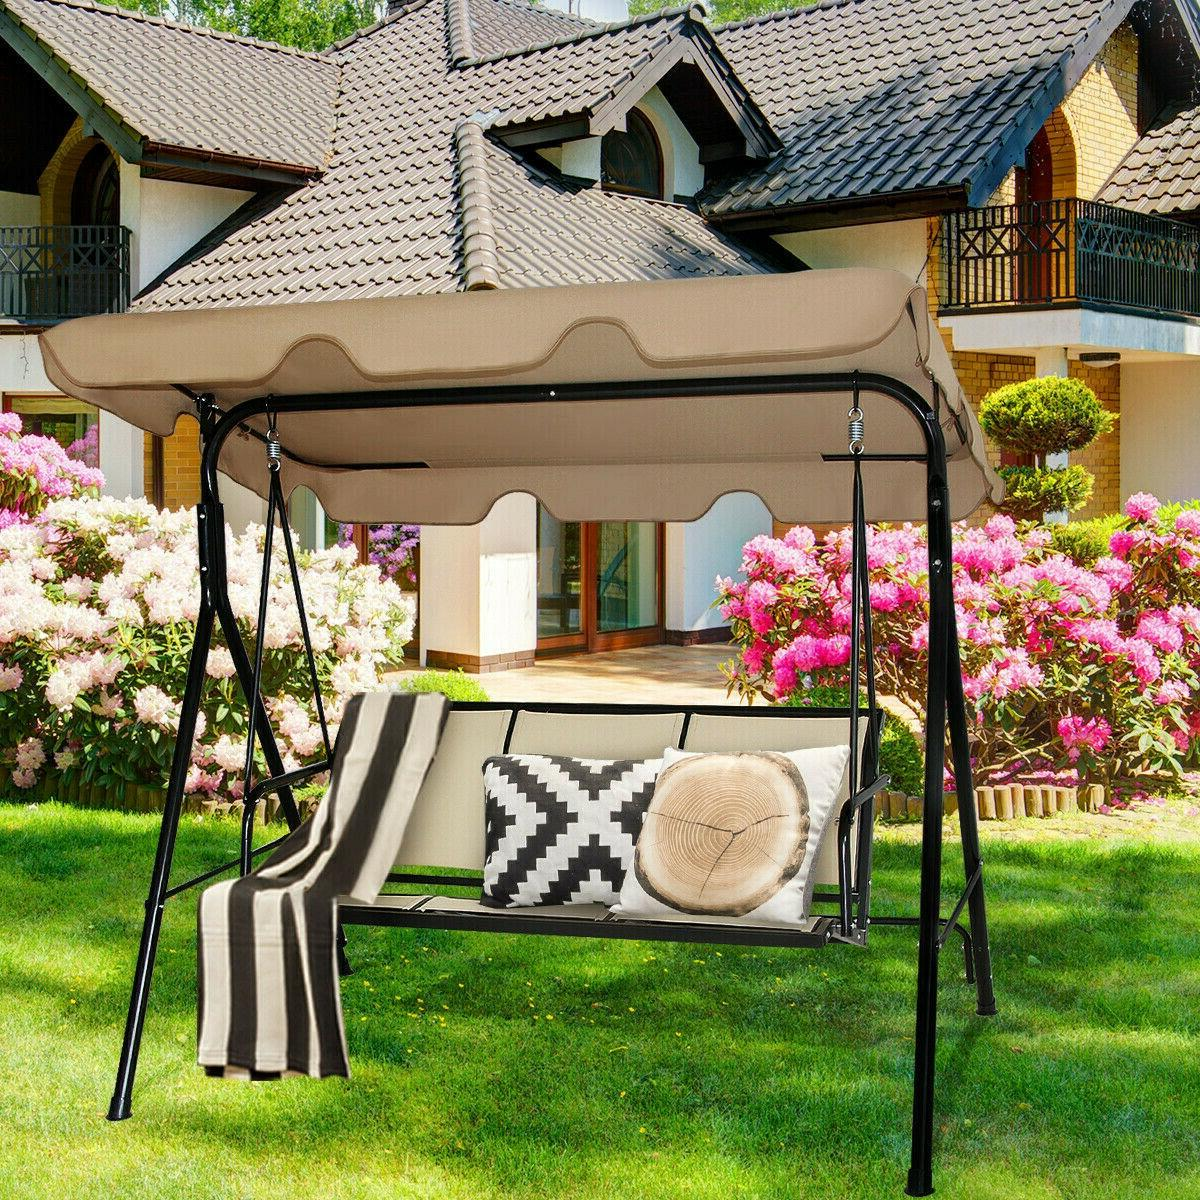 Outdoor Swing Patio Chair Lounge 3 Person Seat Hammock Porch Bench Beige